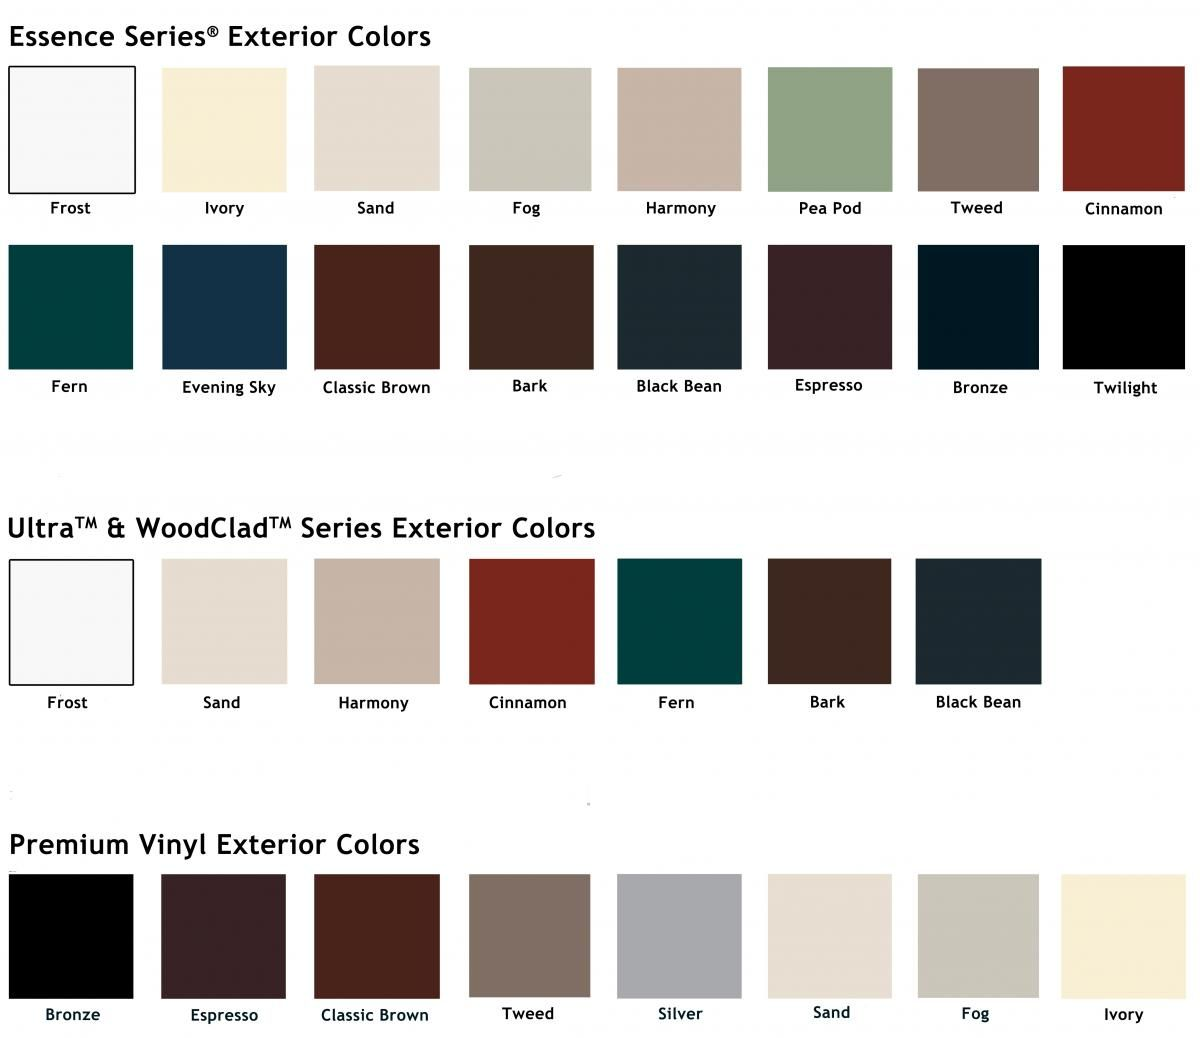 Window and Door Frame Materials - Window & Door Components | Milgard ...